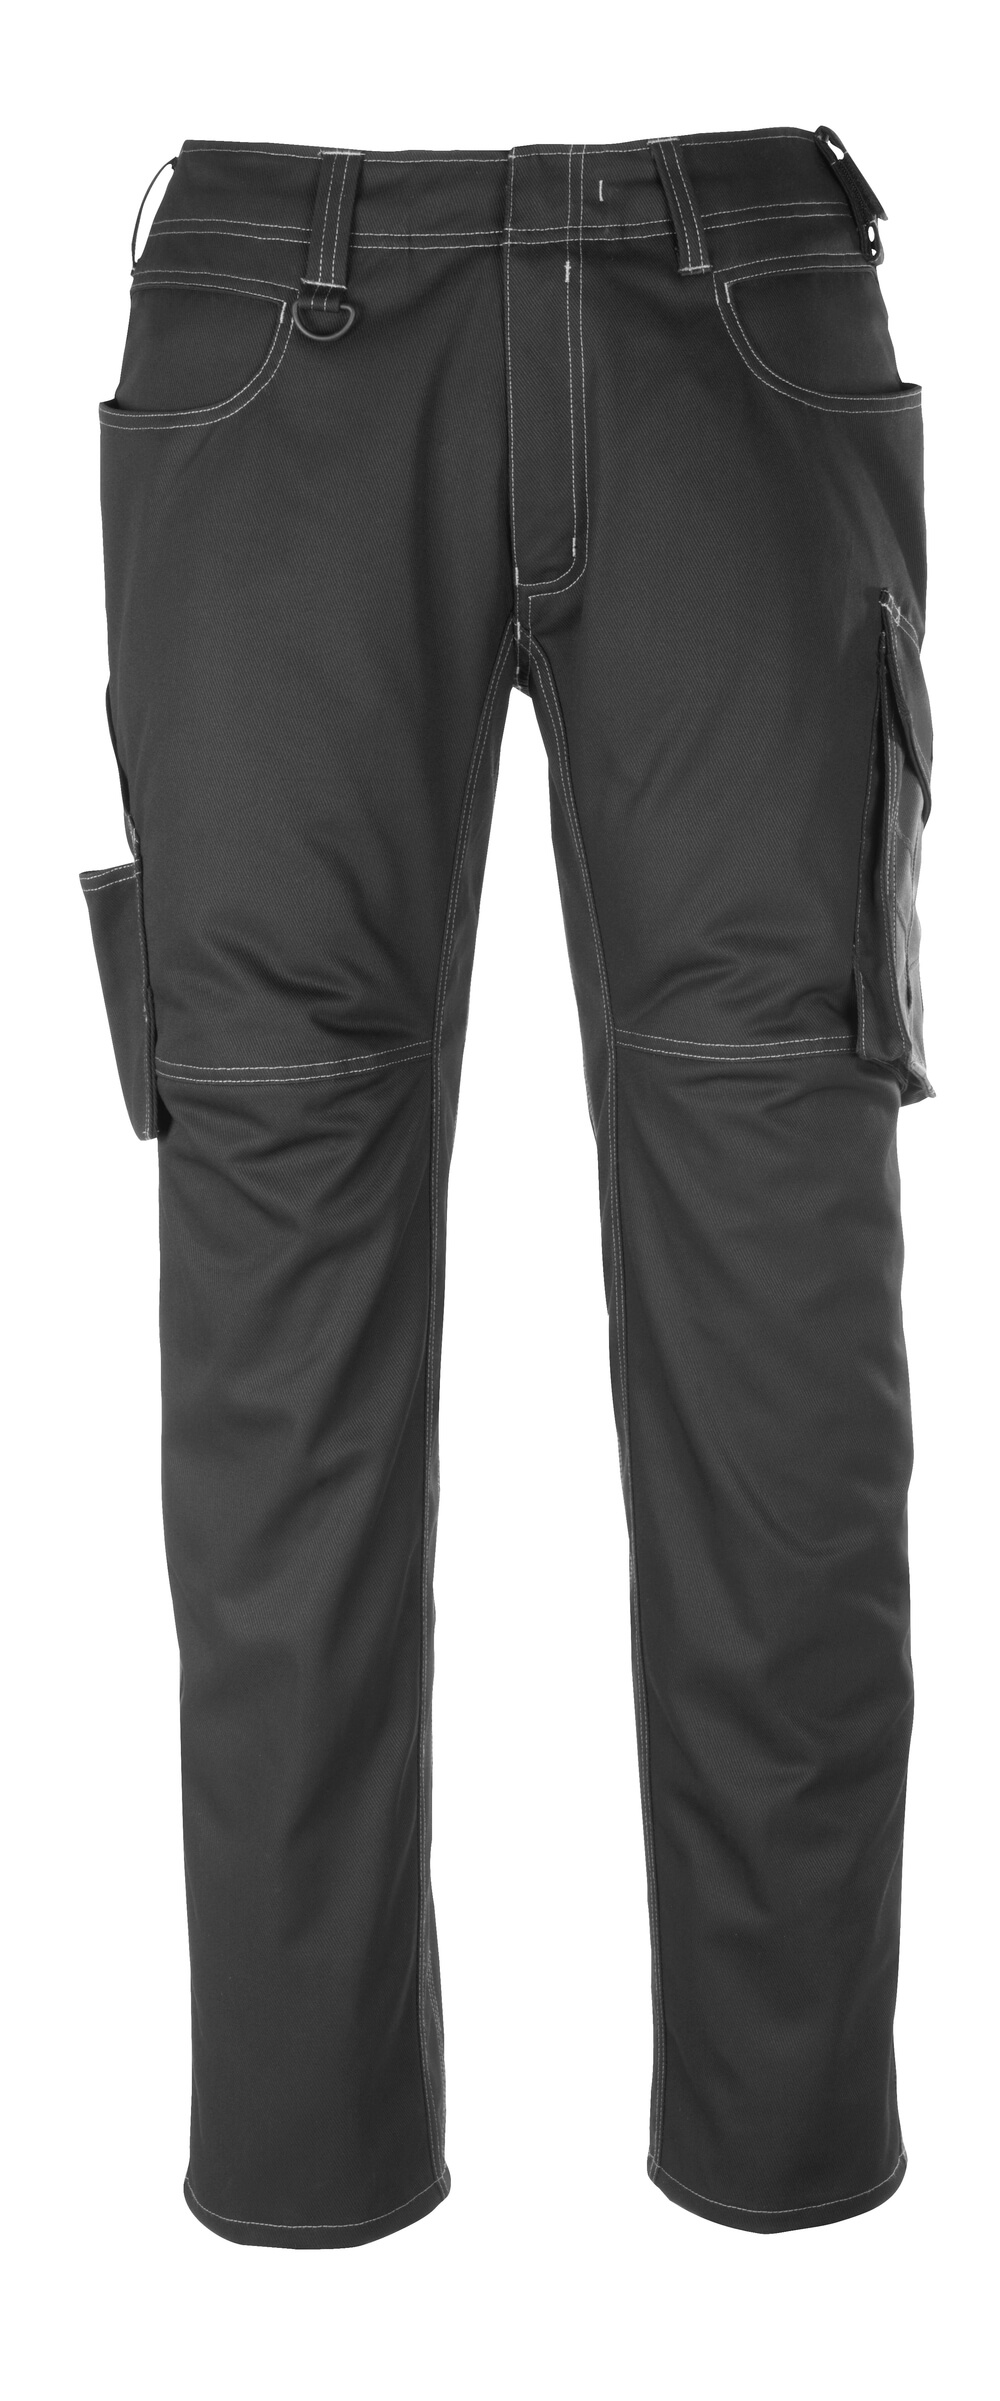 12079-203-0918 Trousers with thigh pockets - black/dark anthracite